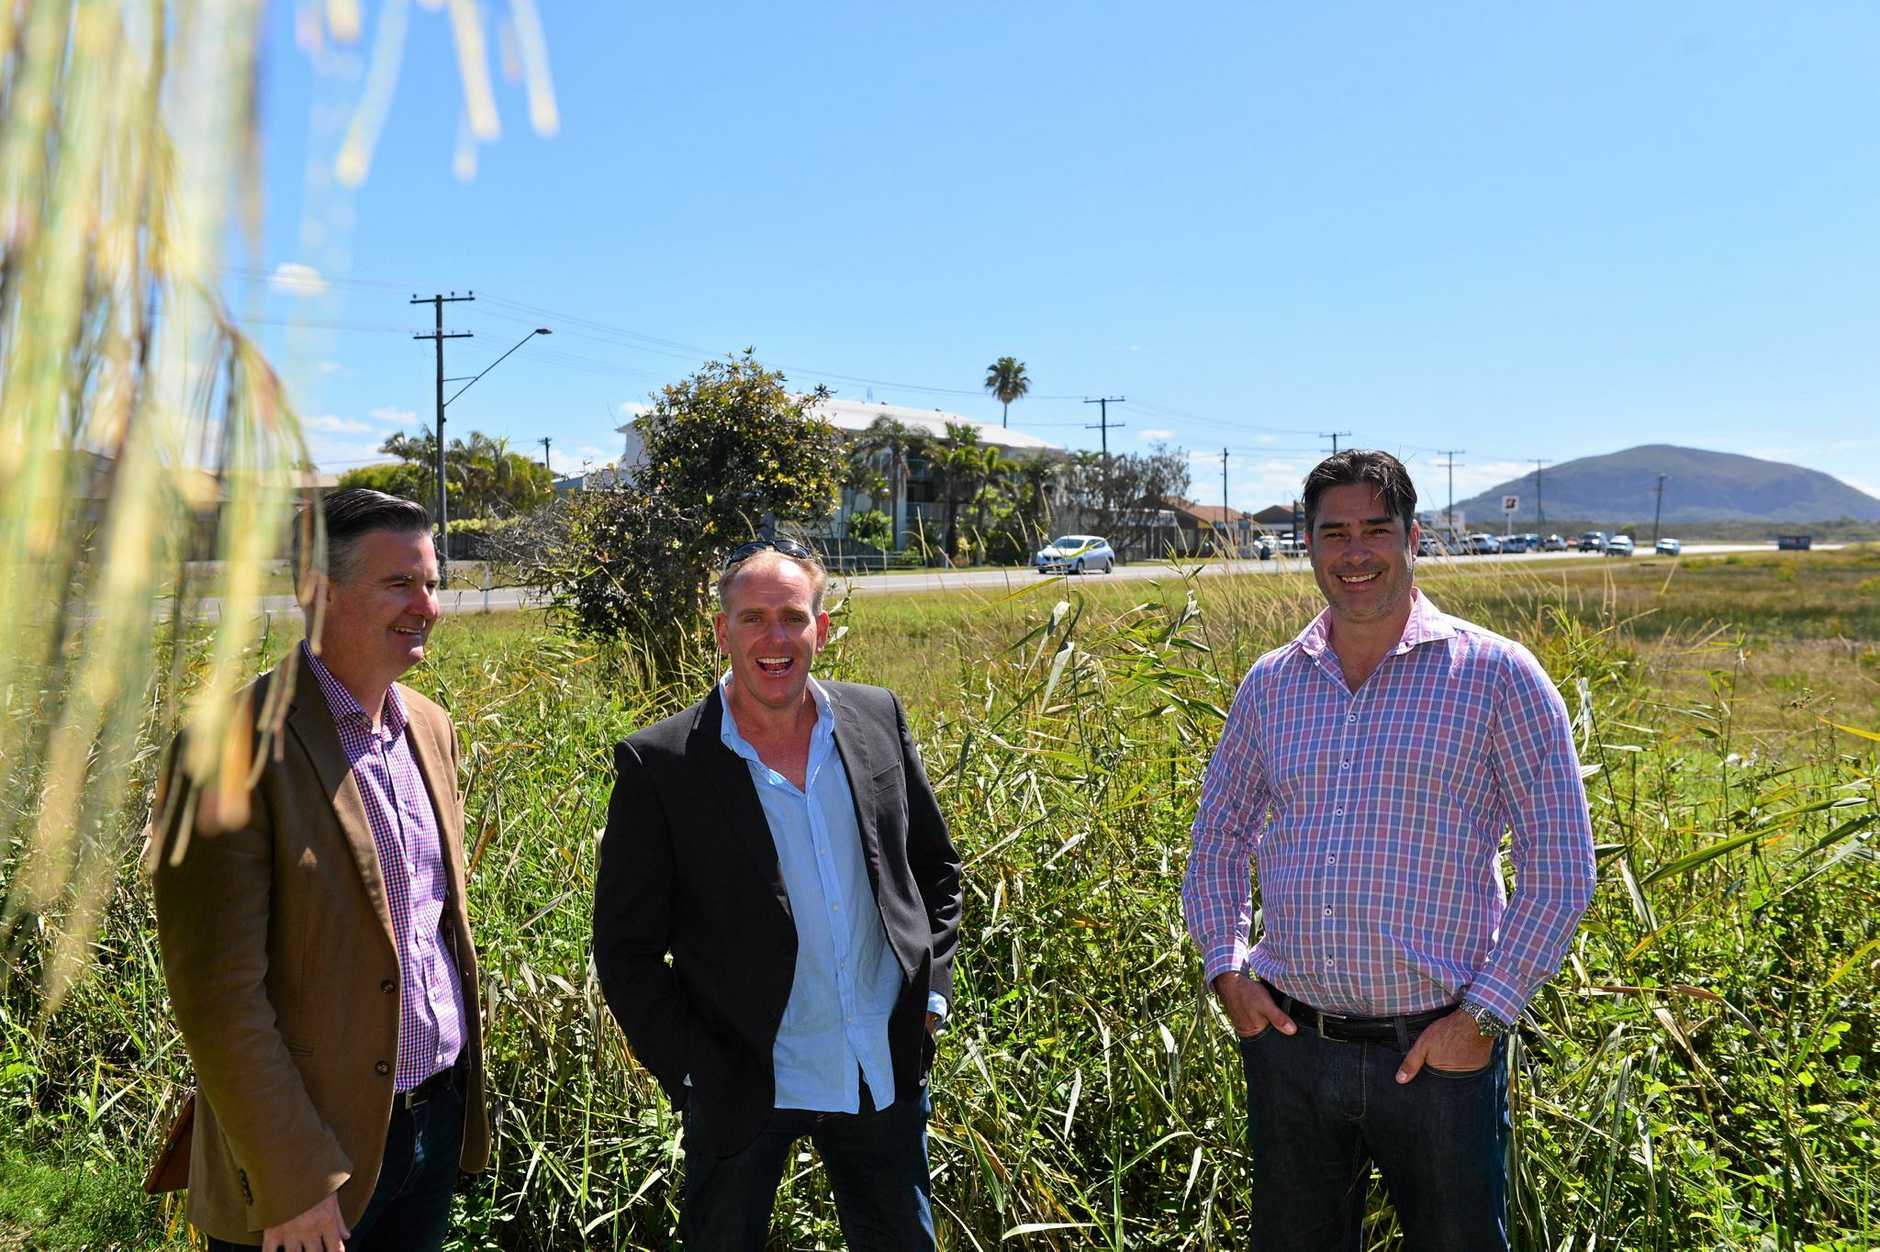 The 5.5 hectare development site near the airport at Marcoola. Falcon Projects director Damon Falcongreen (right) with Cr Jason O'Pray (centre) and Andrew Stevens of Project Urban.  Photo: John McCutcheon / Sunshine Coast Daily